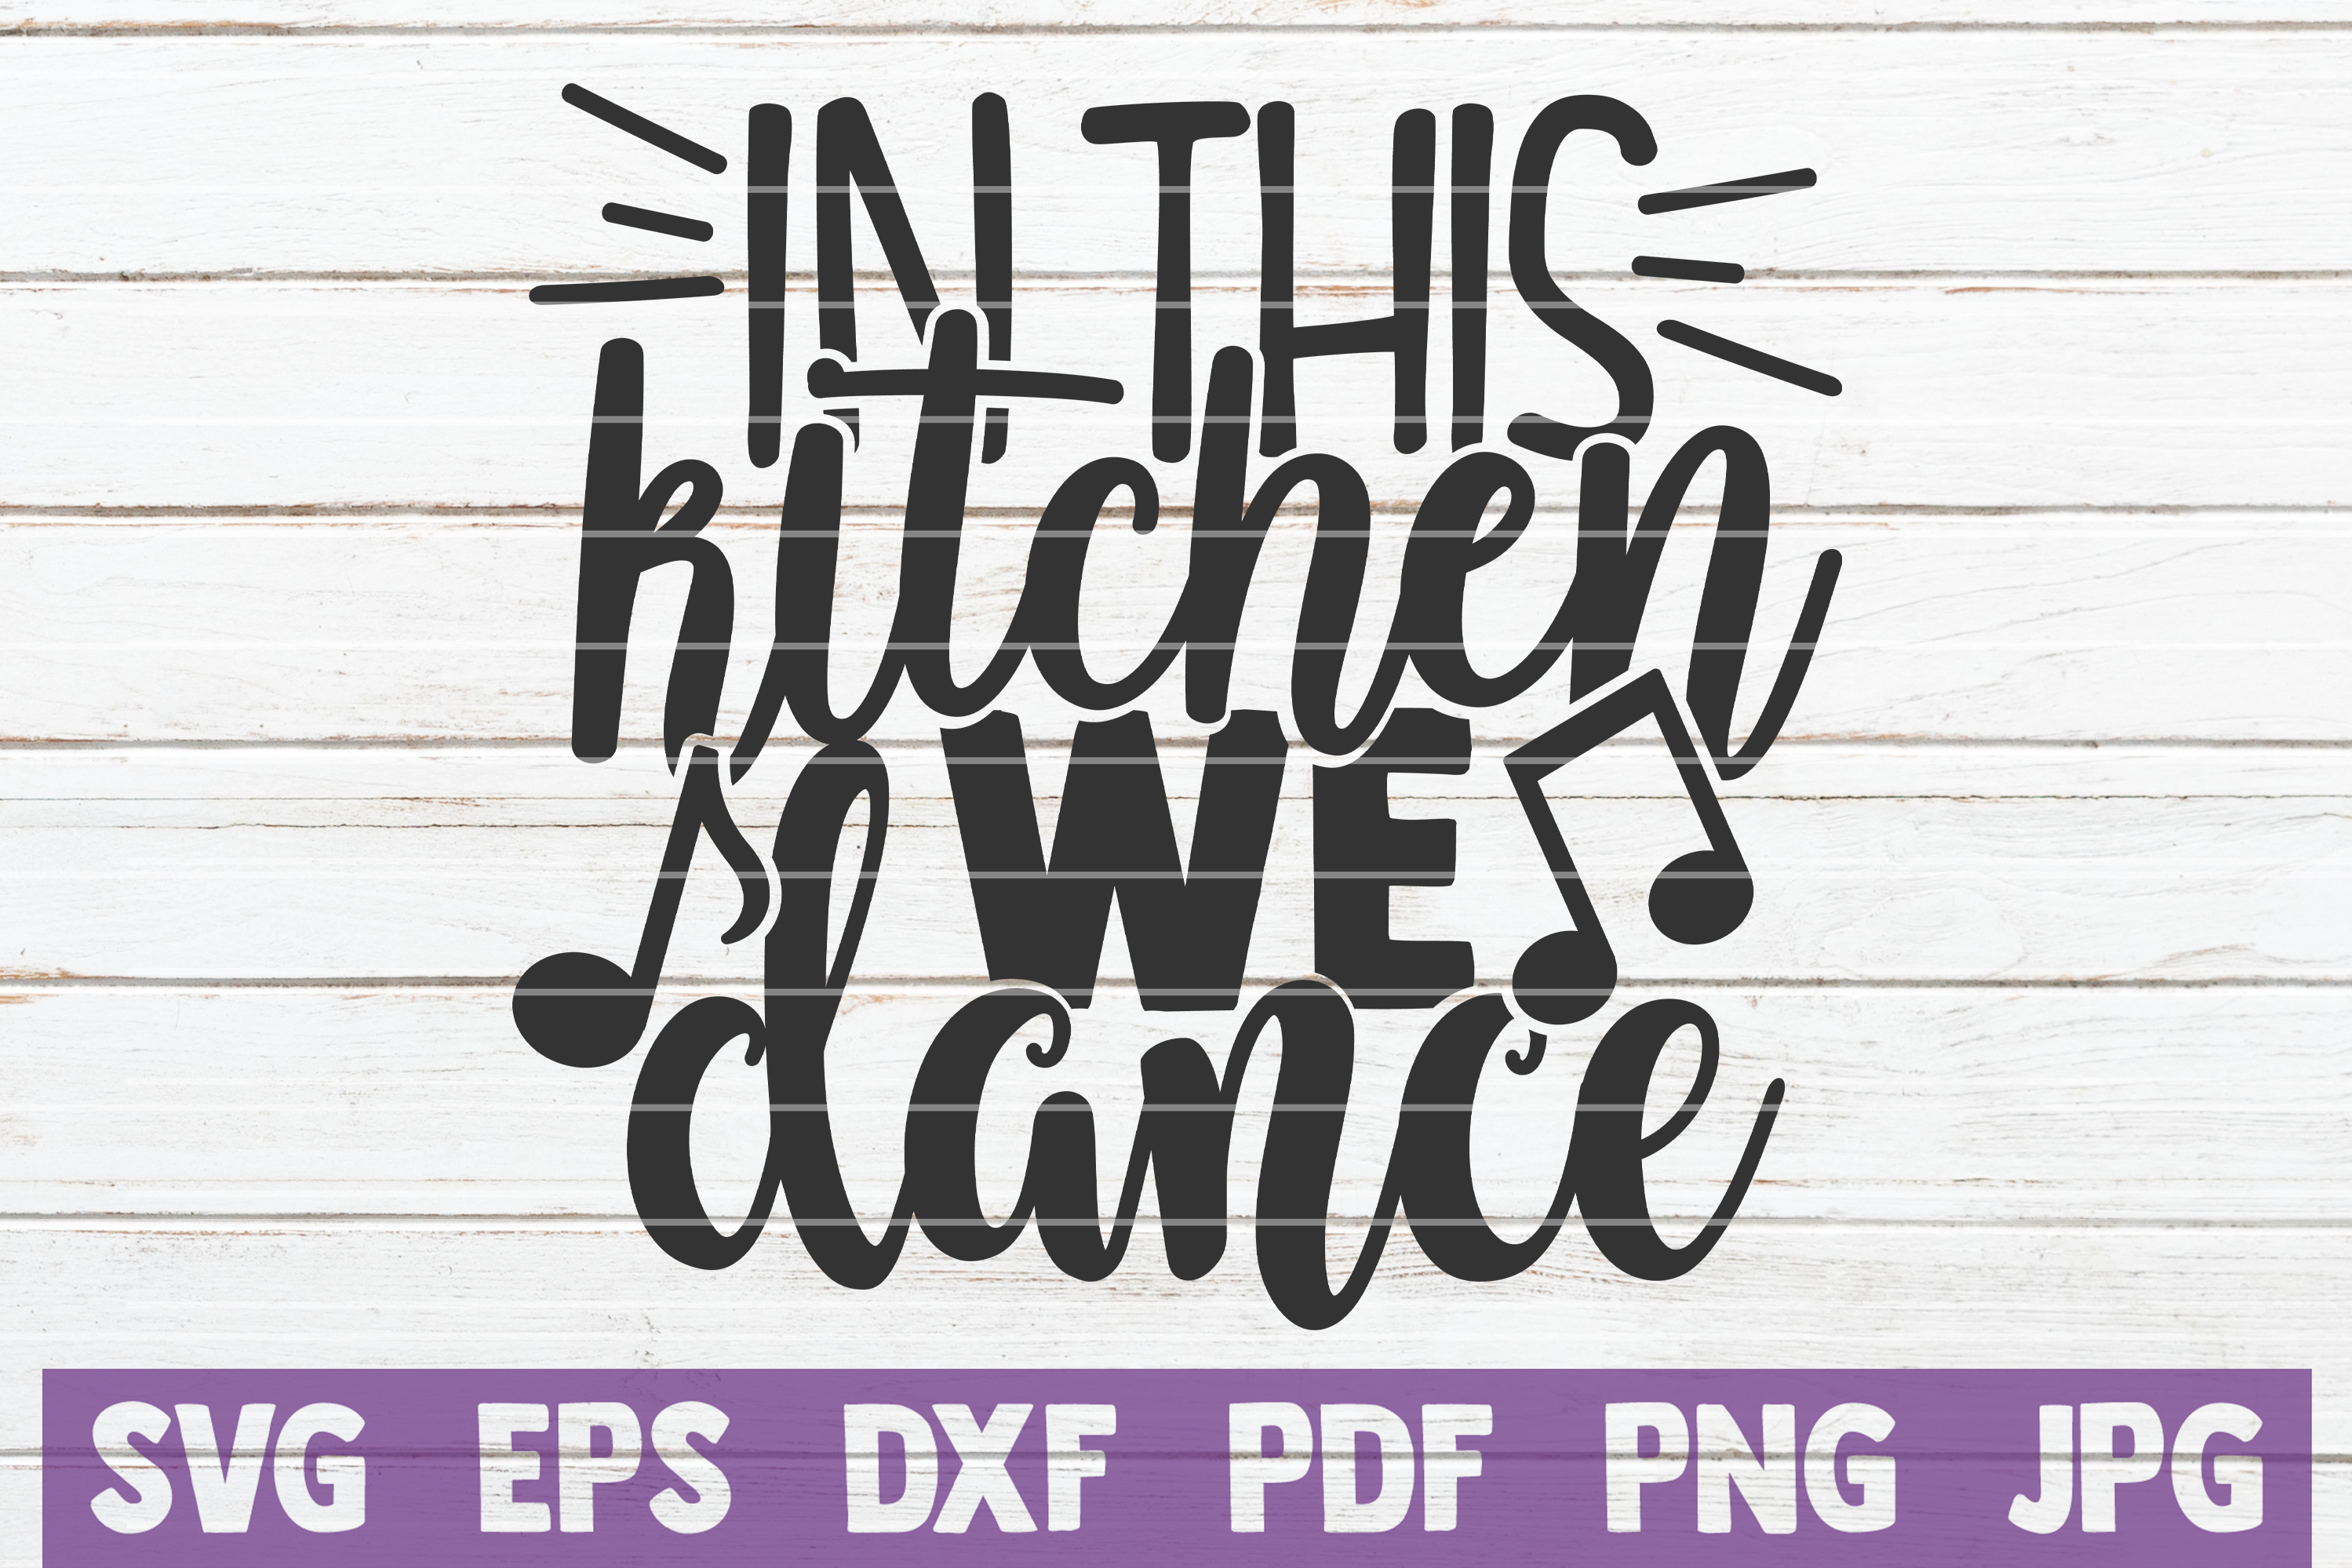 Download Free In This Kitchen We Dance Graphic By Mintymarshmallows Creative for Cricut Explore, Silhouette and other cutting machines.